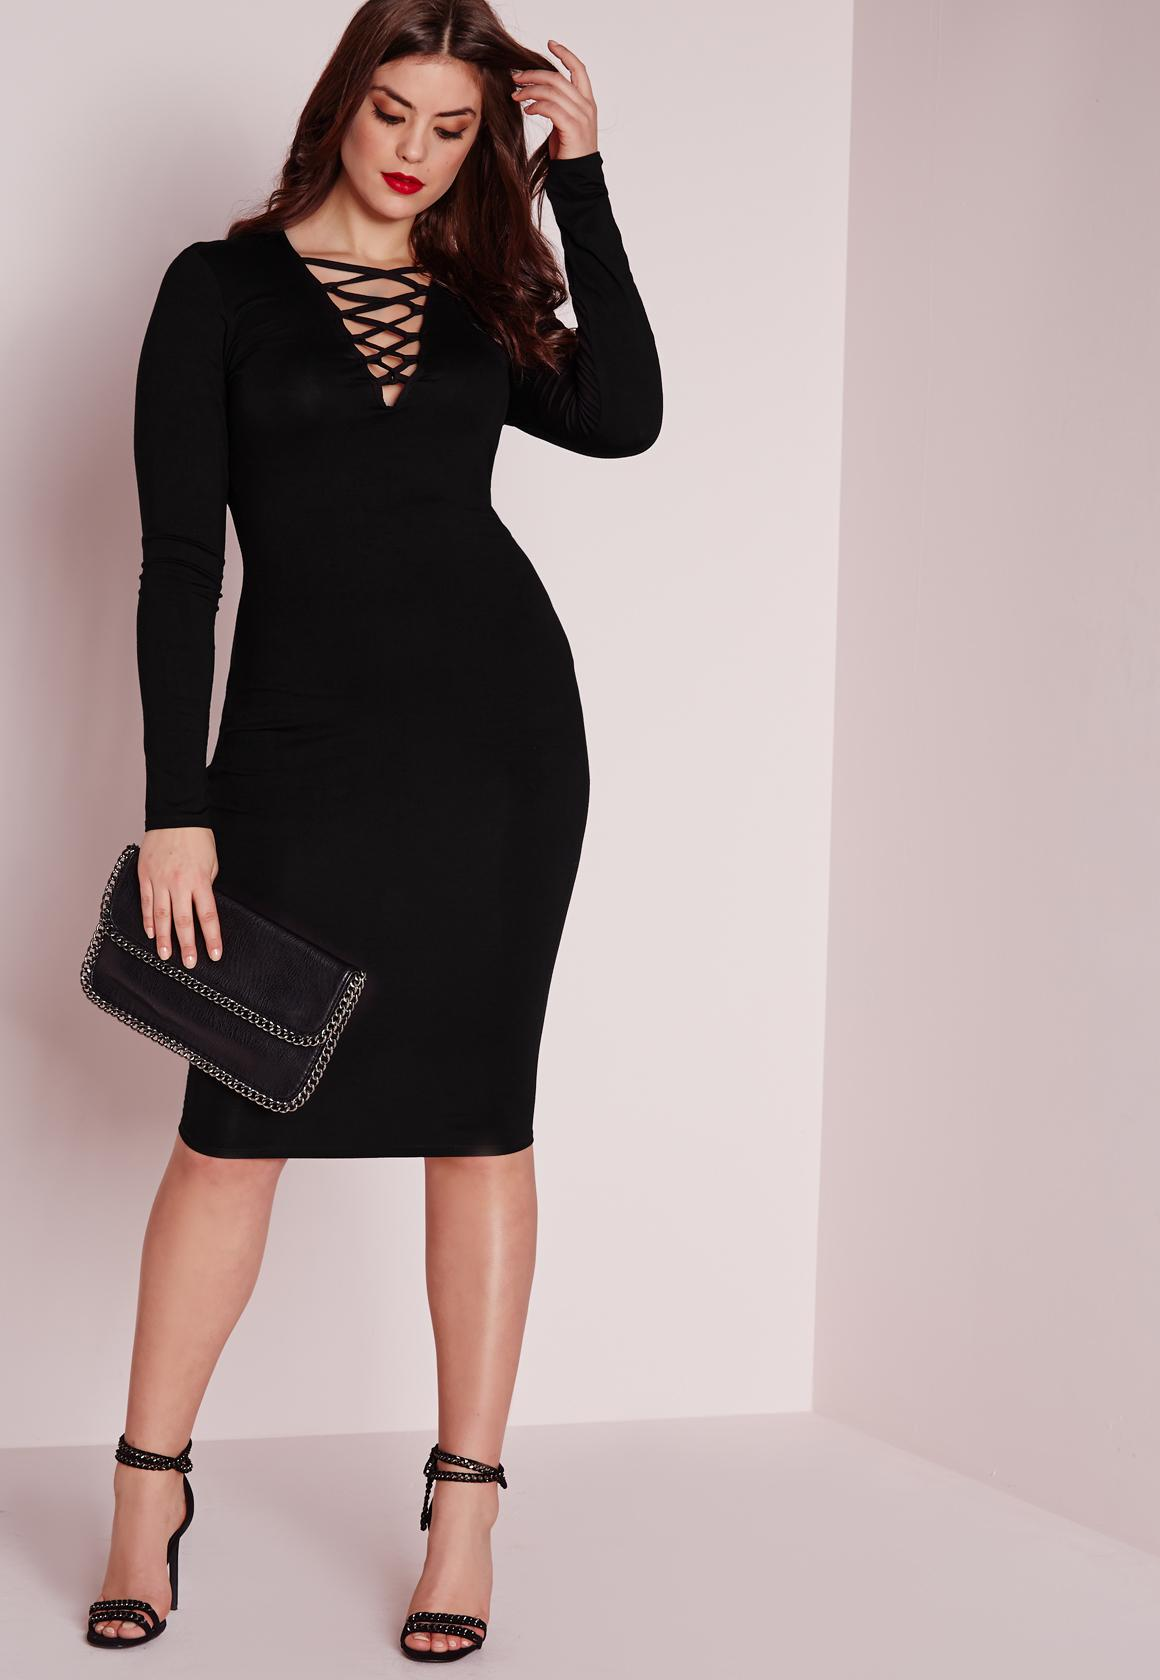 black dress plus size plus size lace up dress black WXAVEZB